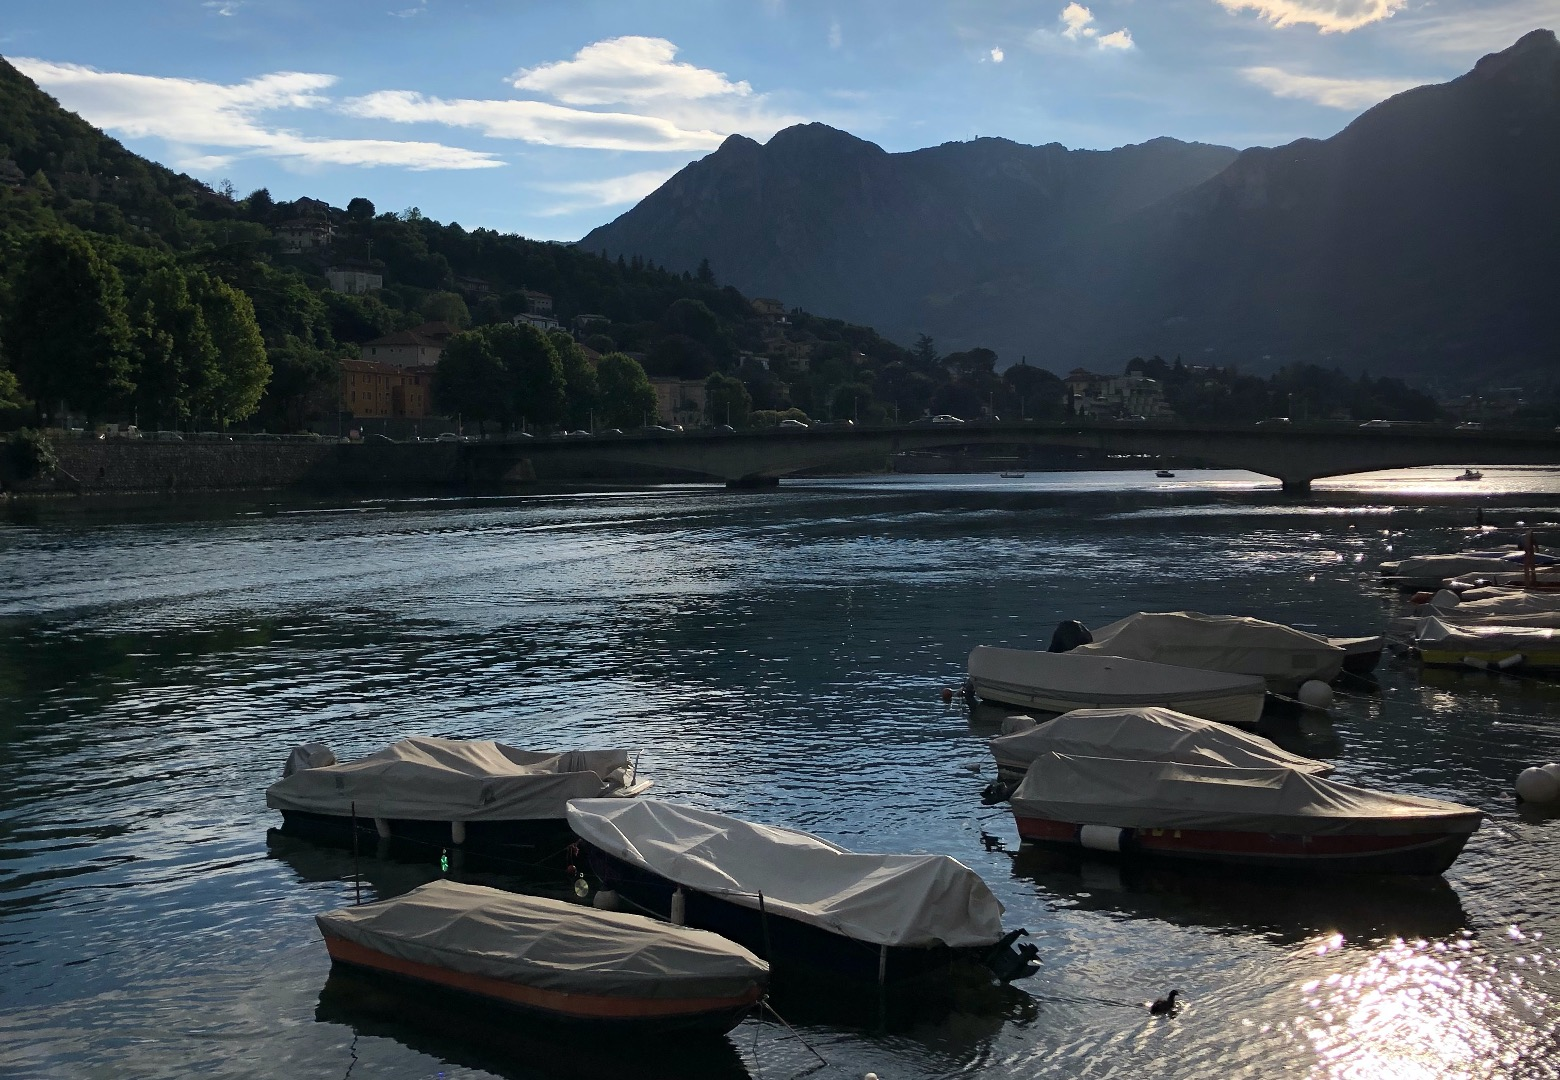 Lake Como, Italy. Boats moored up at edge of the lake. Green forested hills surround the lake baked by a bright blue sky.